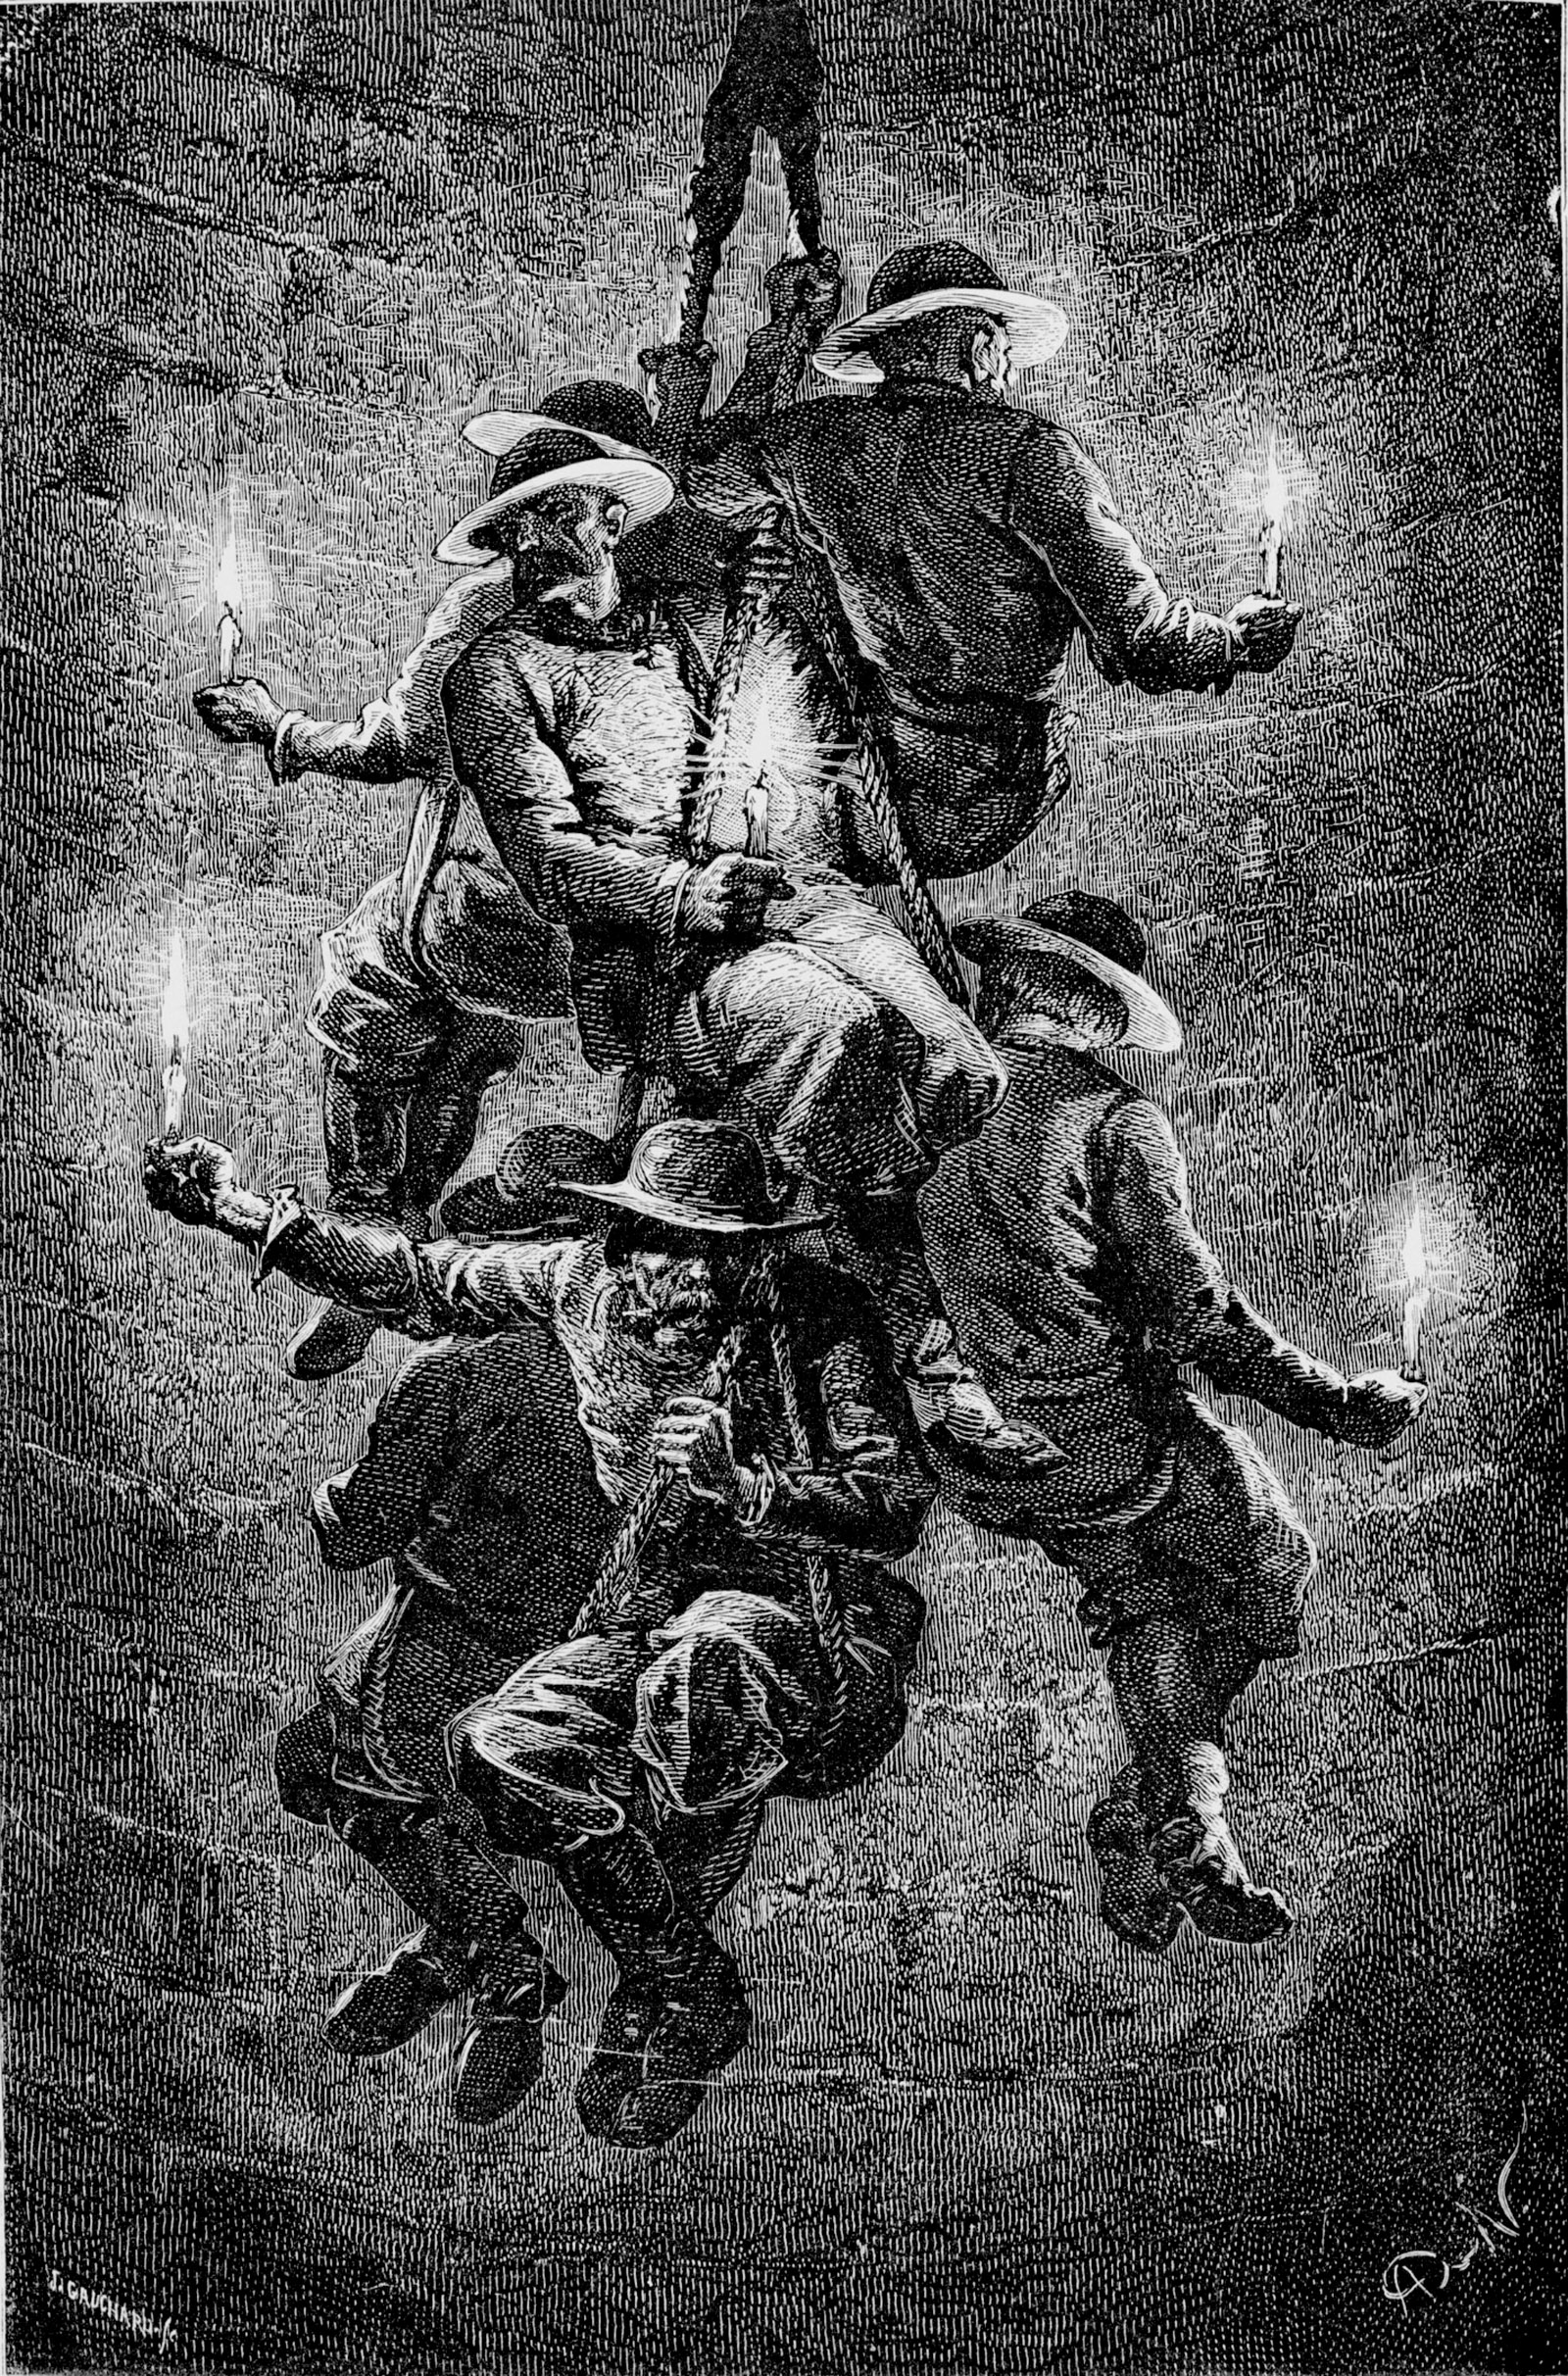 Engraving of workers in a salt mine